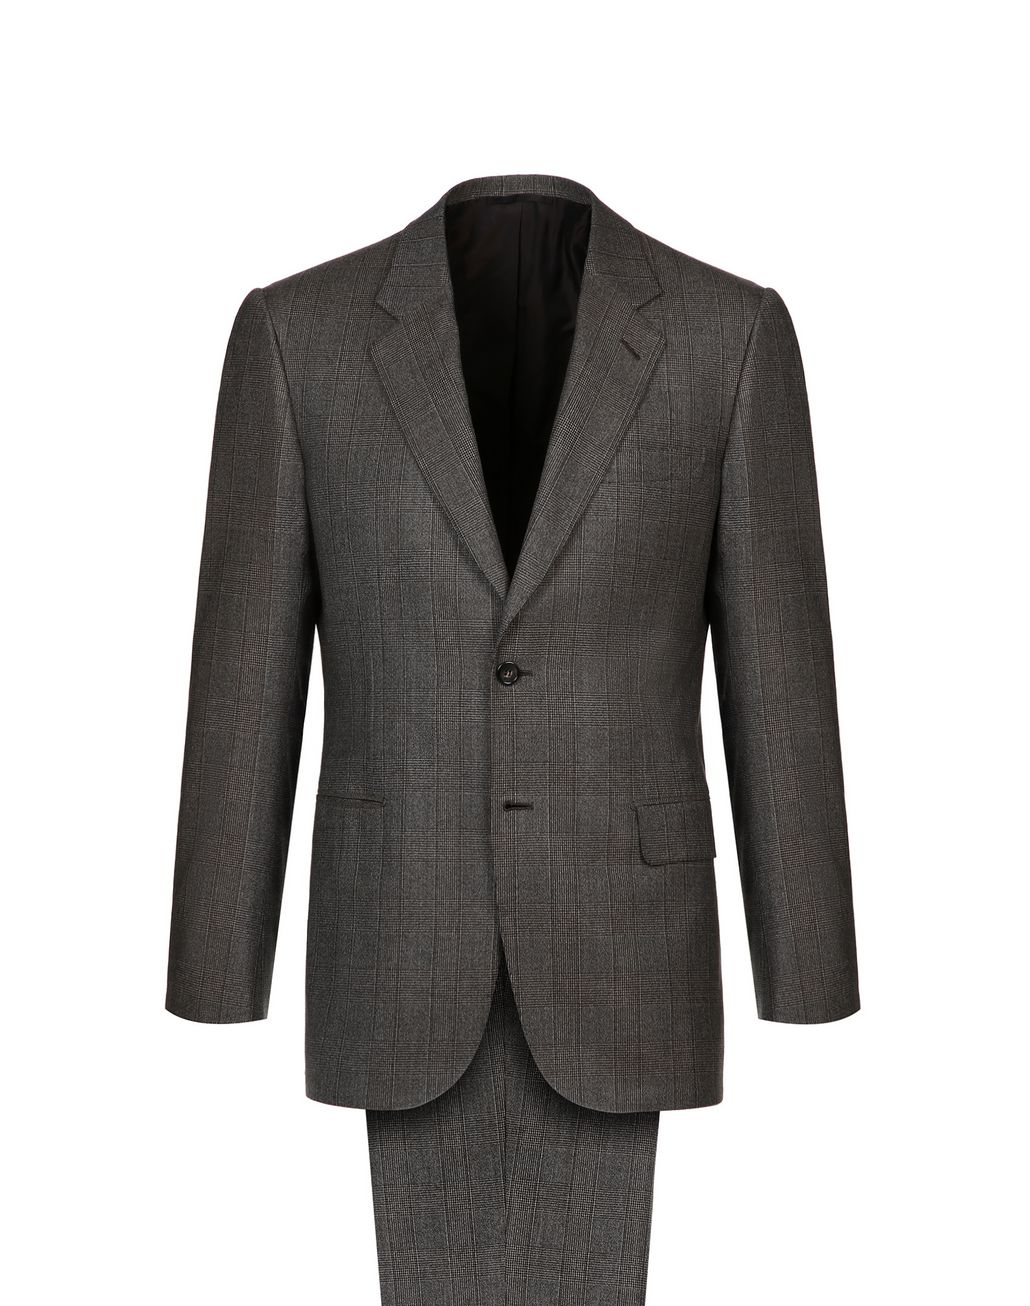 BRIONI Abito Parioli Marrone Chiaro a Quadri   Suits & Jackets [*** pickupInStoreShippingNotGuaranteed_info ***] f